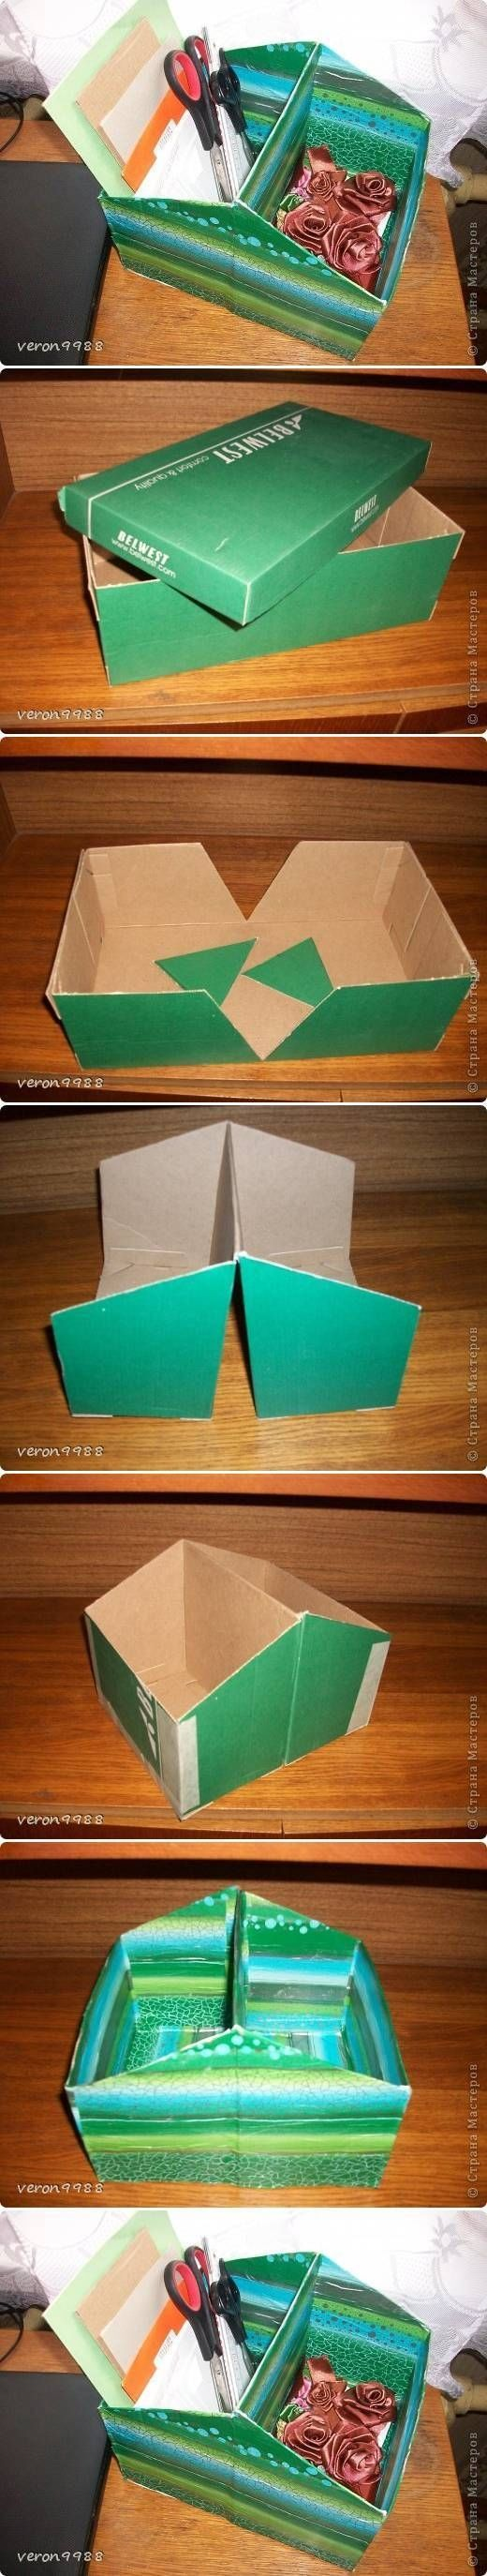 DIY Shoe Box Organizer Pictures, Photos, and Images for Facebook ...